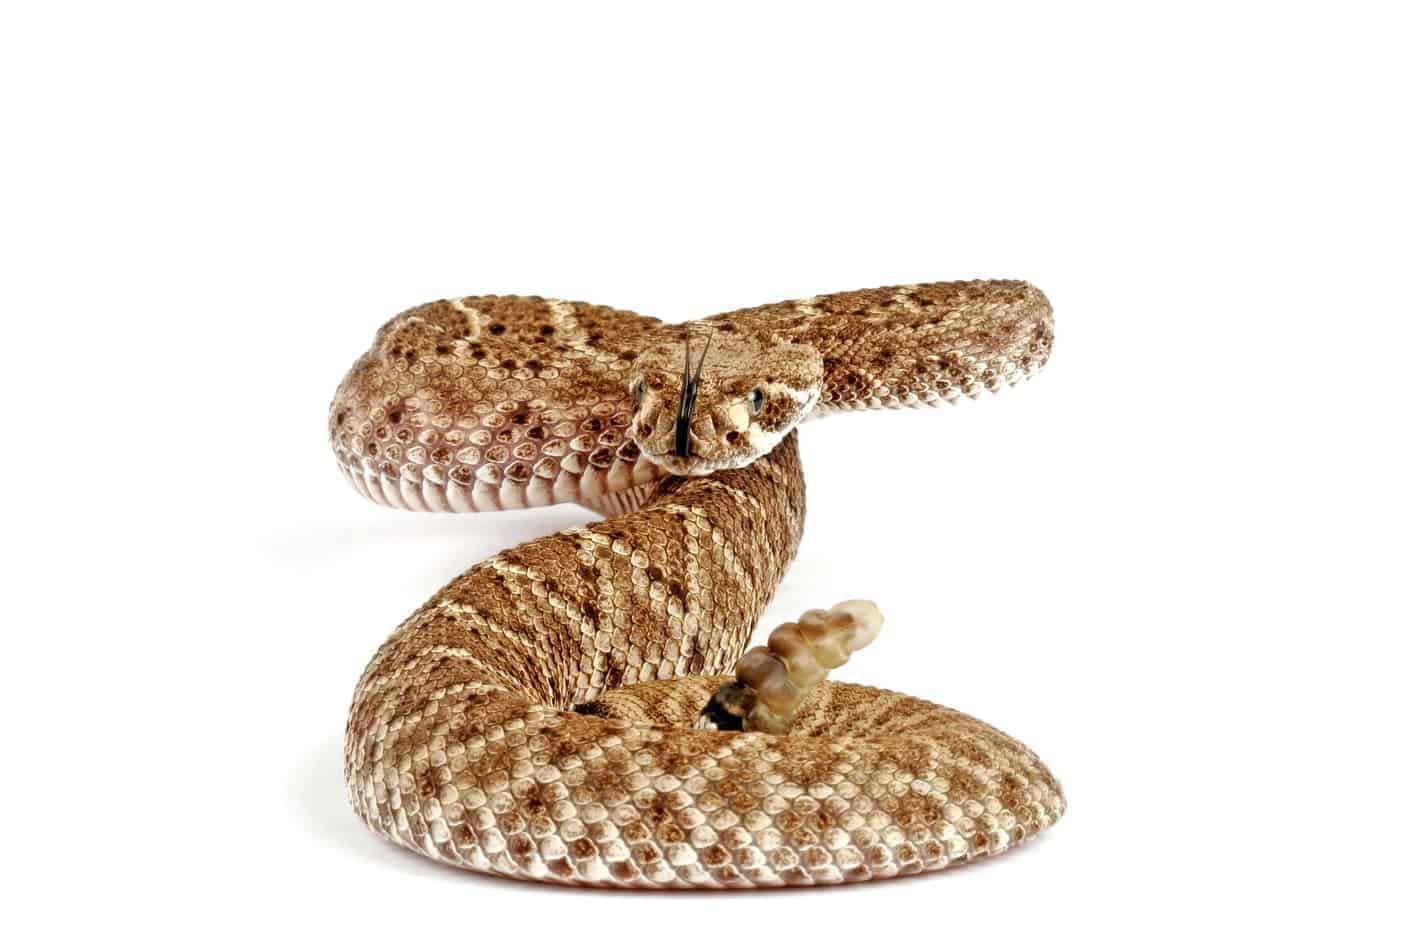 27 Fascinating Facts About Rattlesnakes (With Pictures)